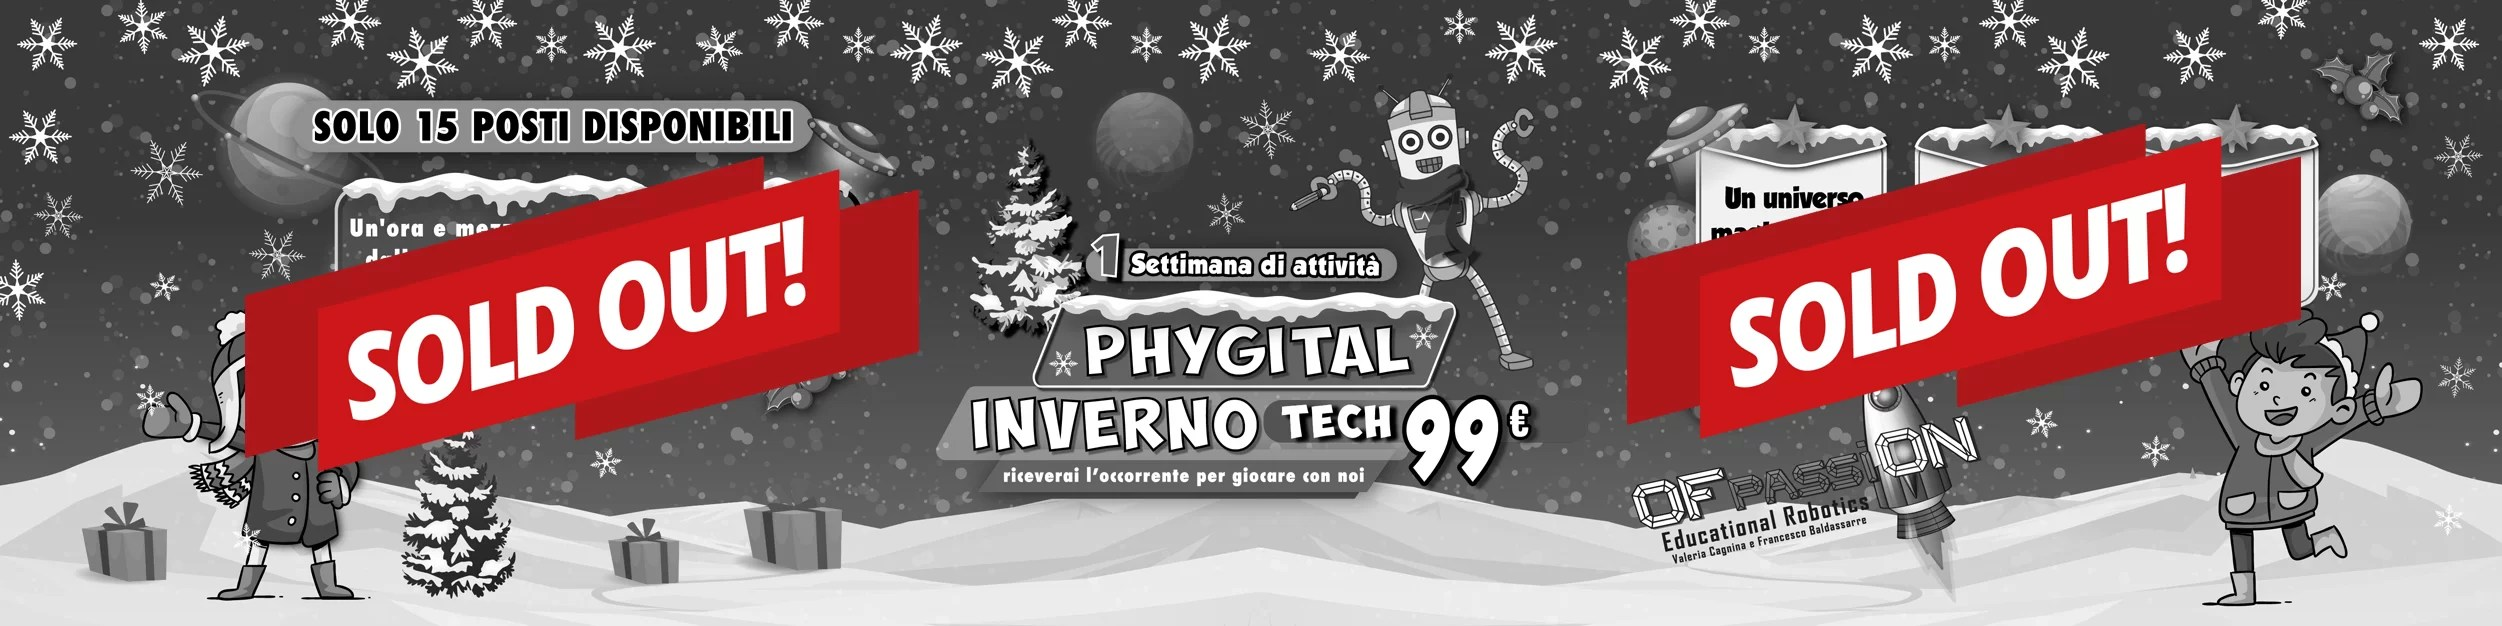 phygital inverno sold out